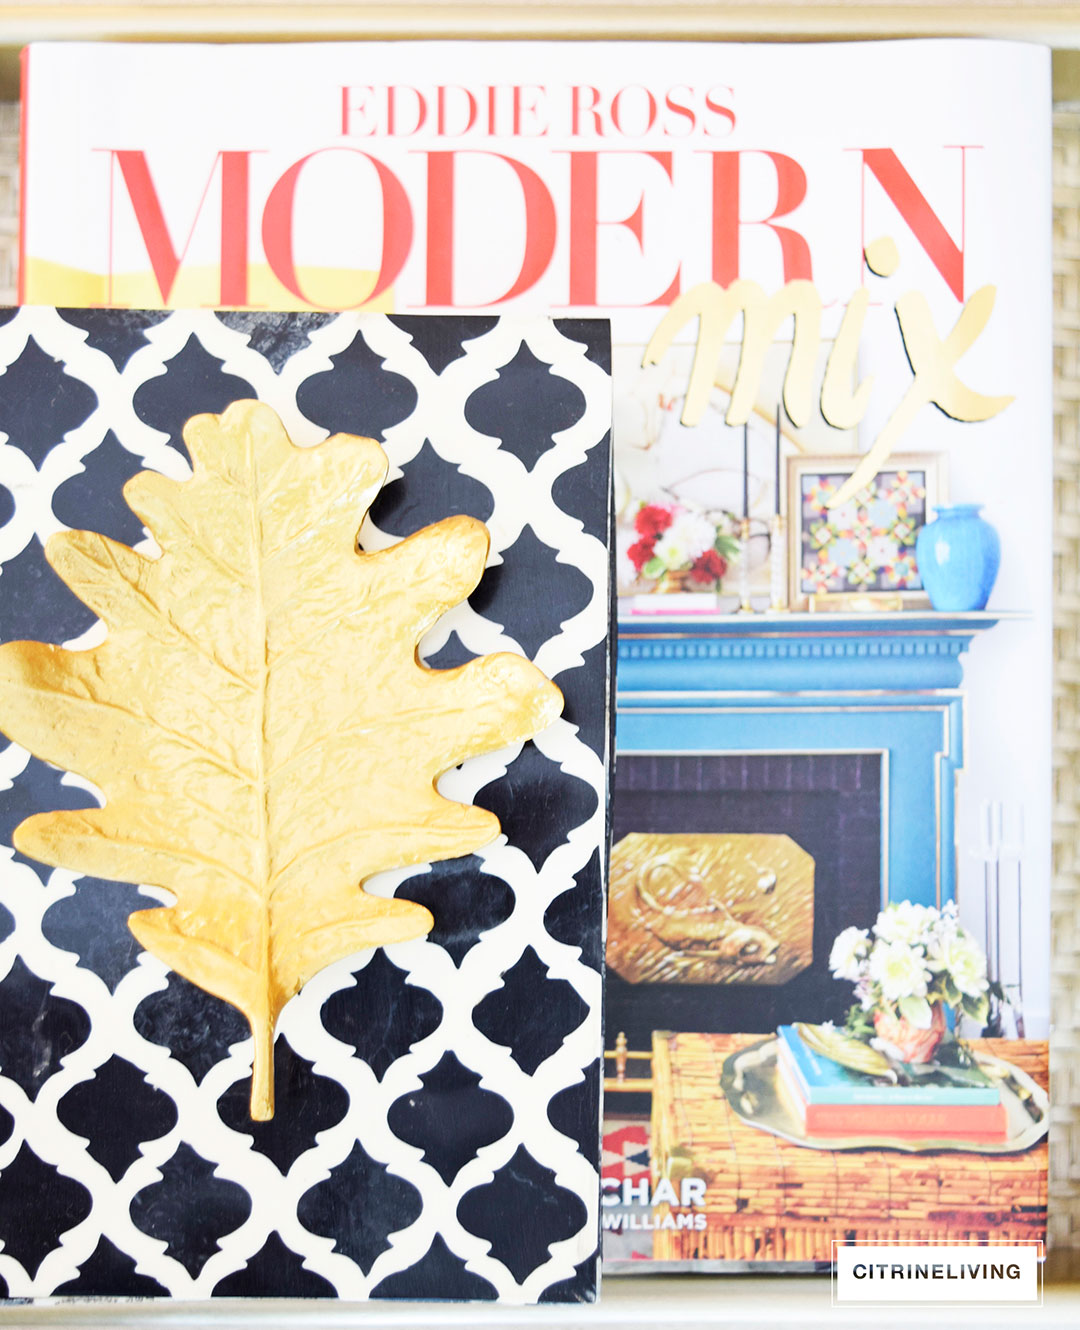 Vibrant design books topped with moroccan inspired decorative box and Fall accents